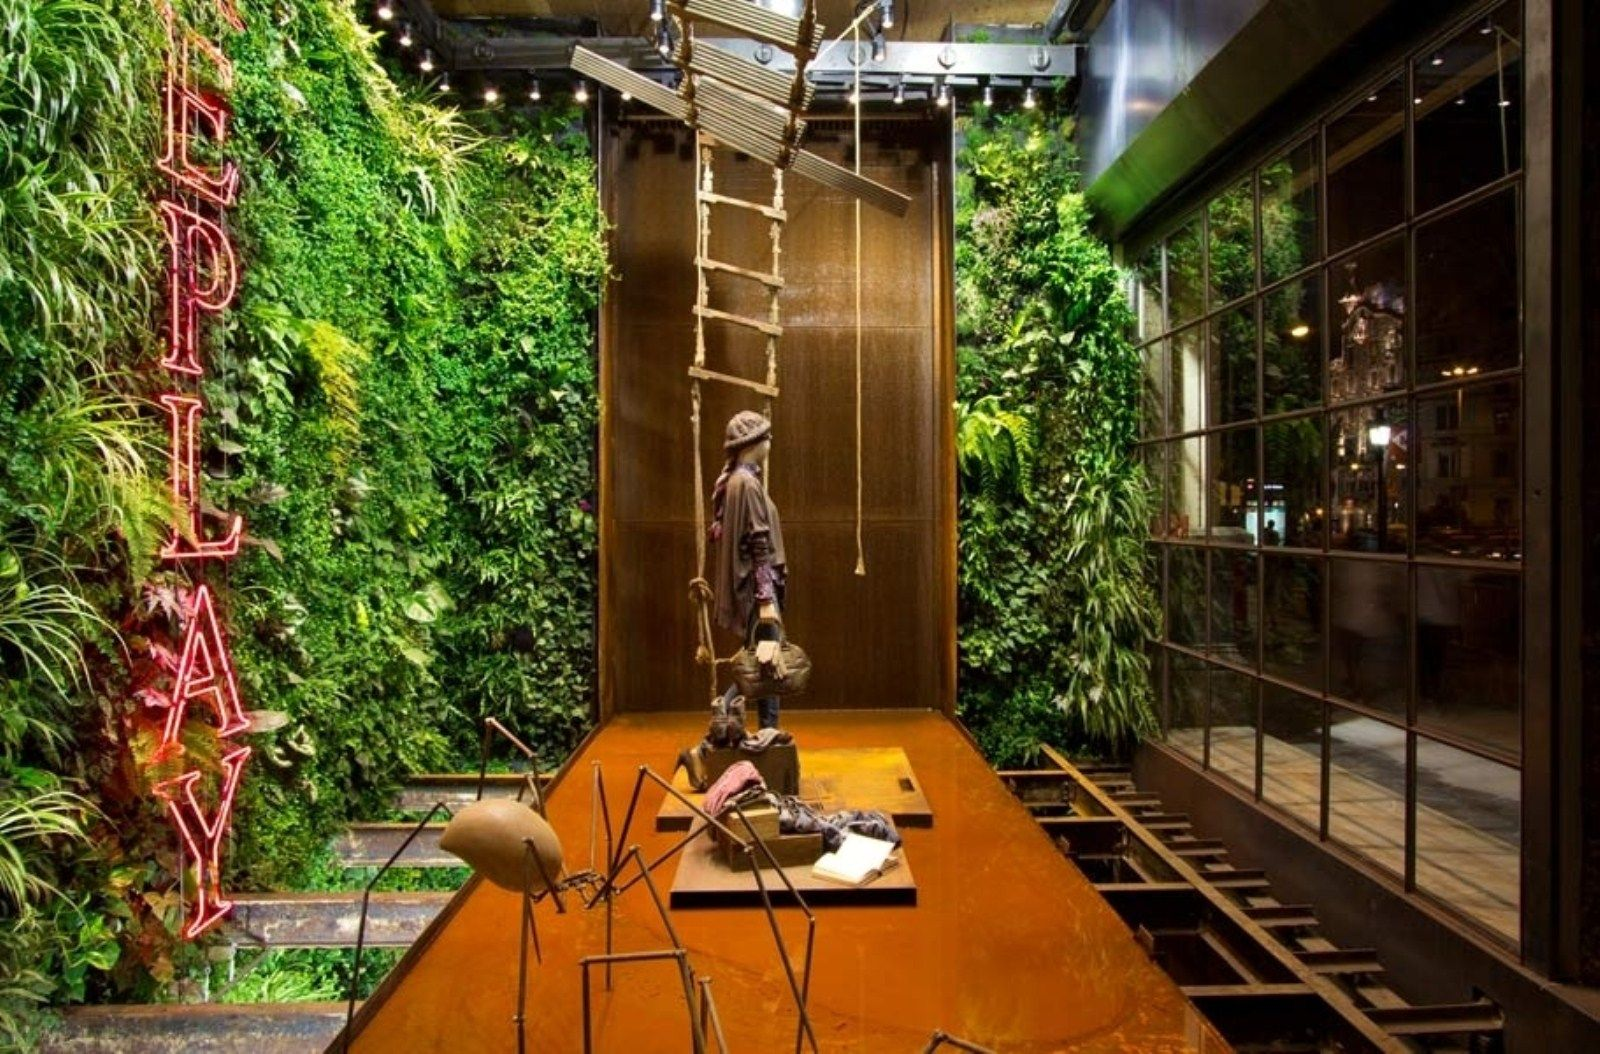 Attractive Adorable Indoor Home Garden Idea With Statue Decor And Living Green Wall Home  Garden Ideas And